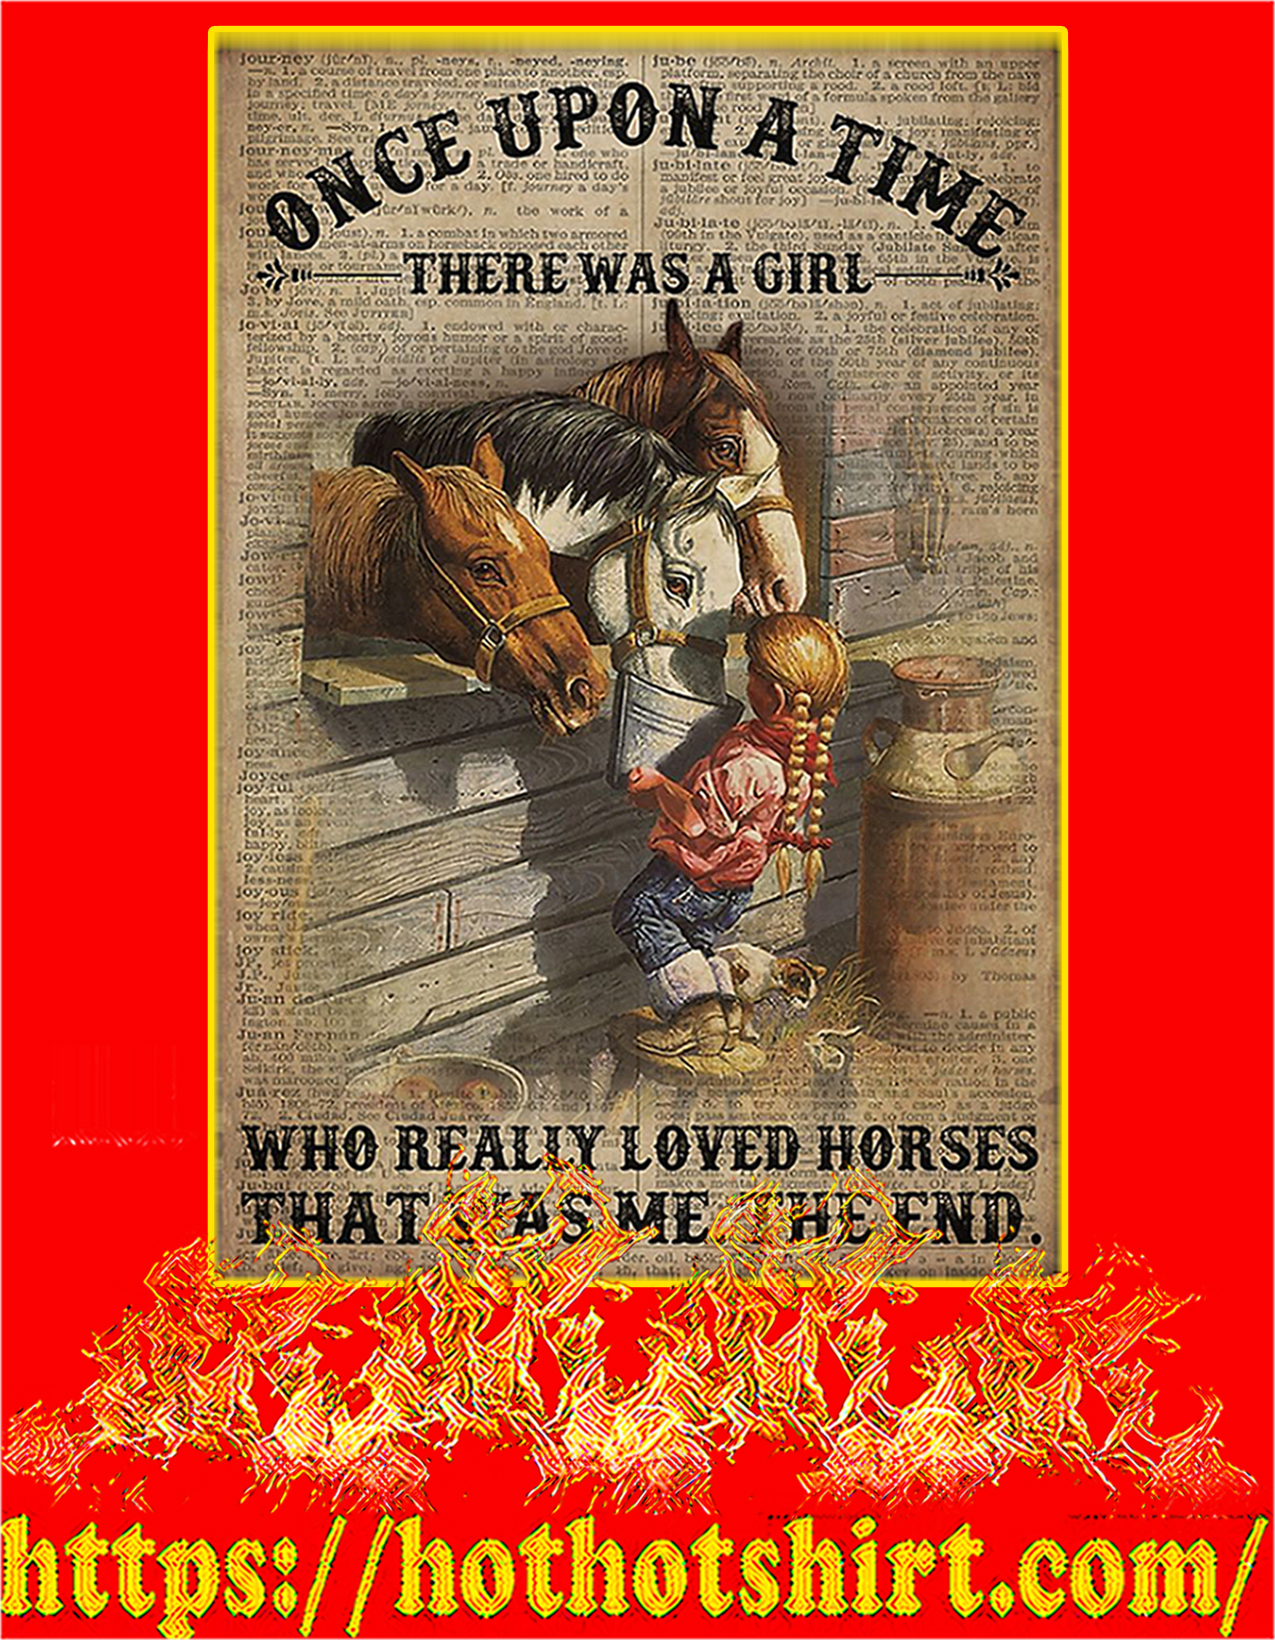 Once upon a time there was a girl who really loved horses poster - A2